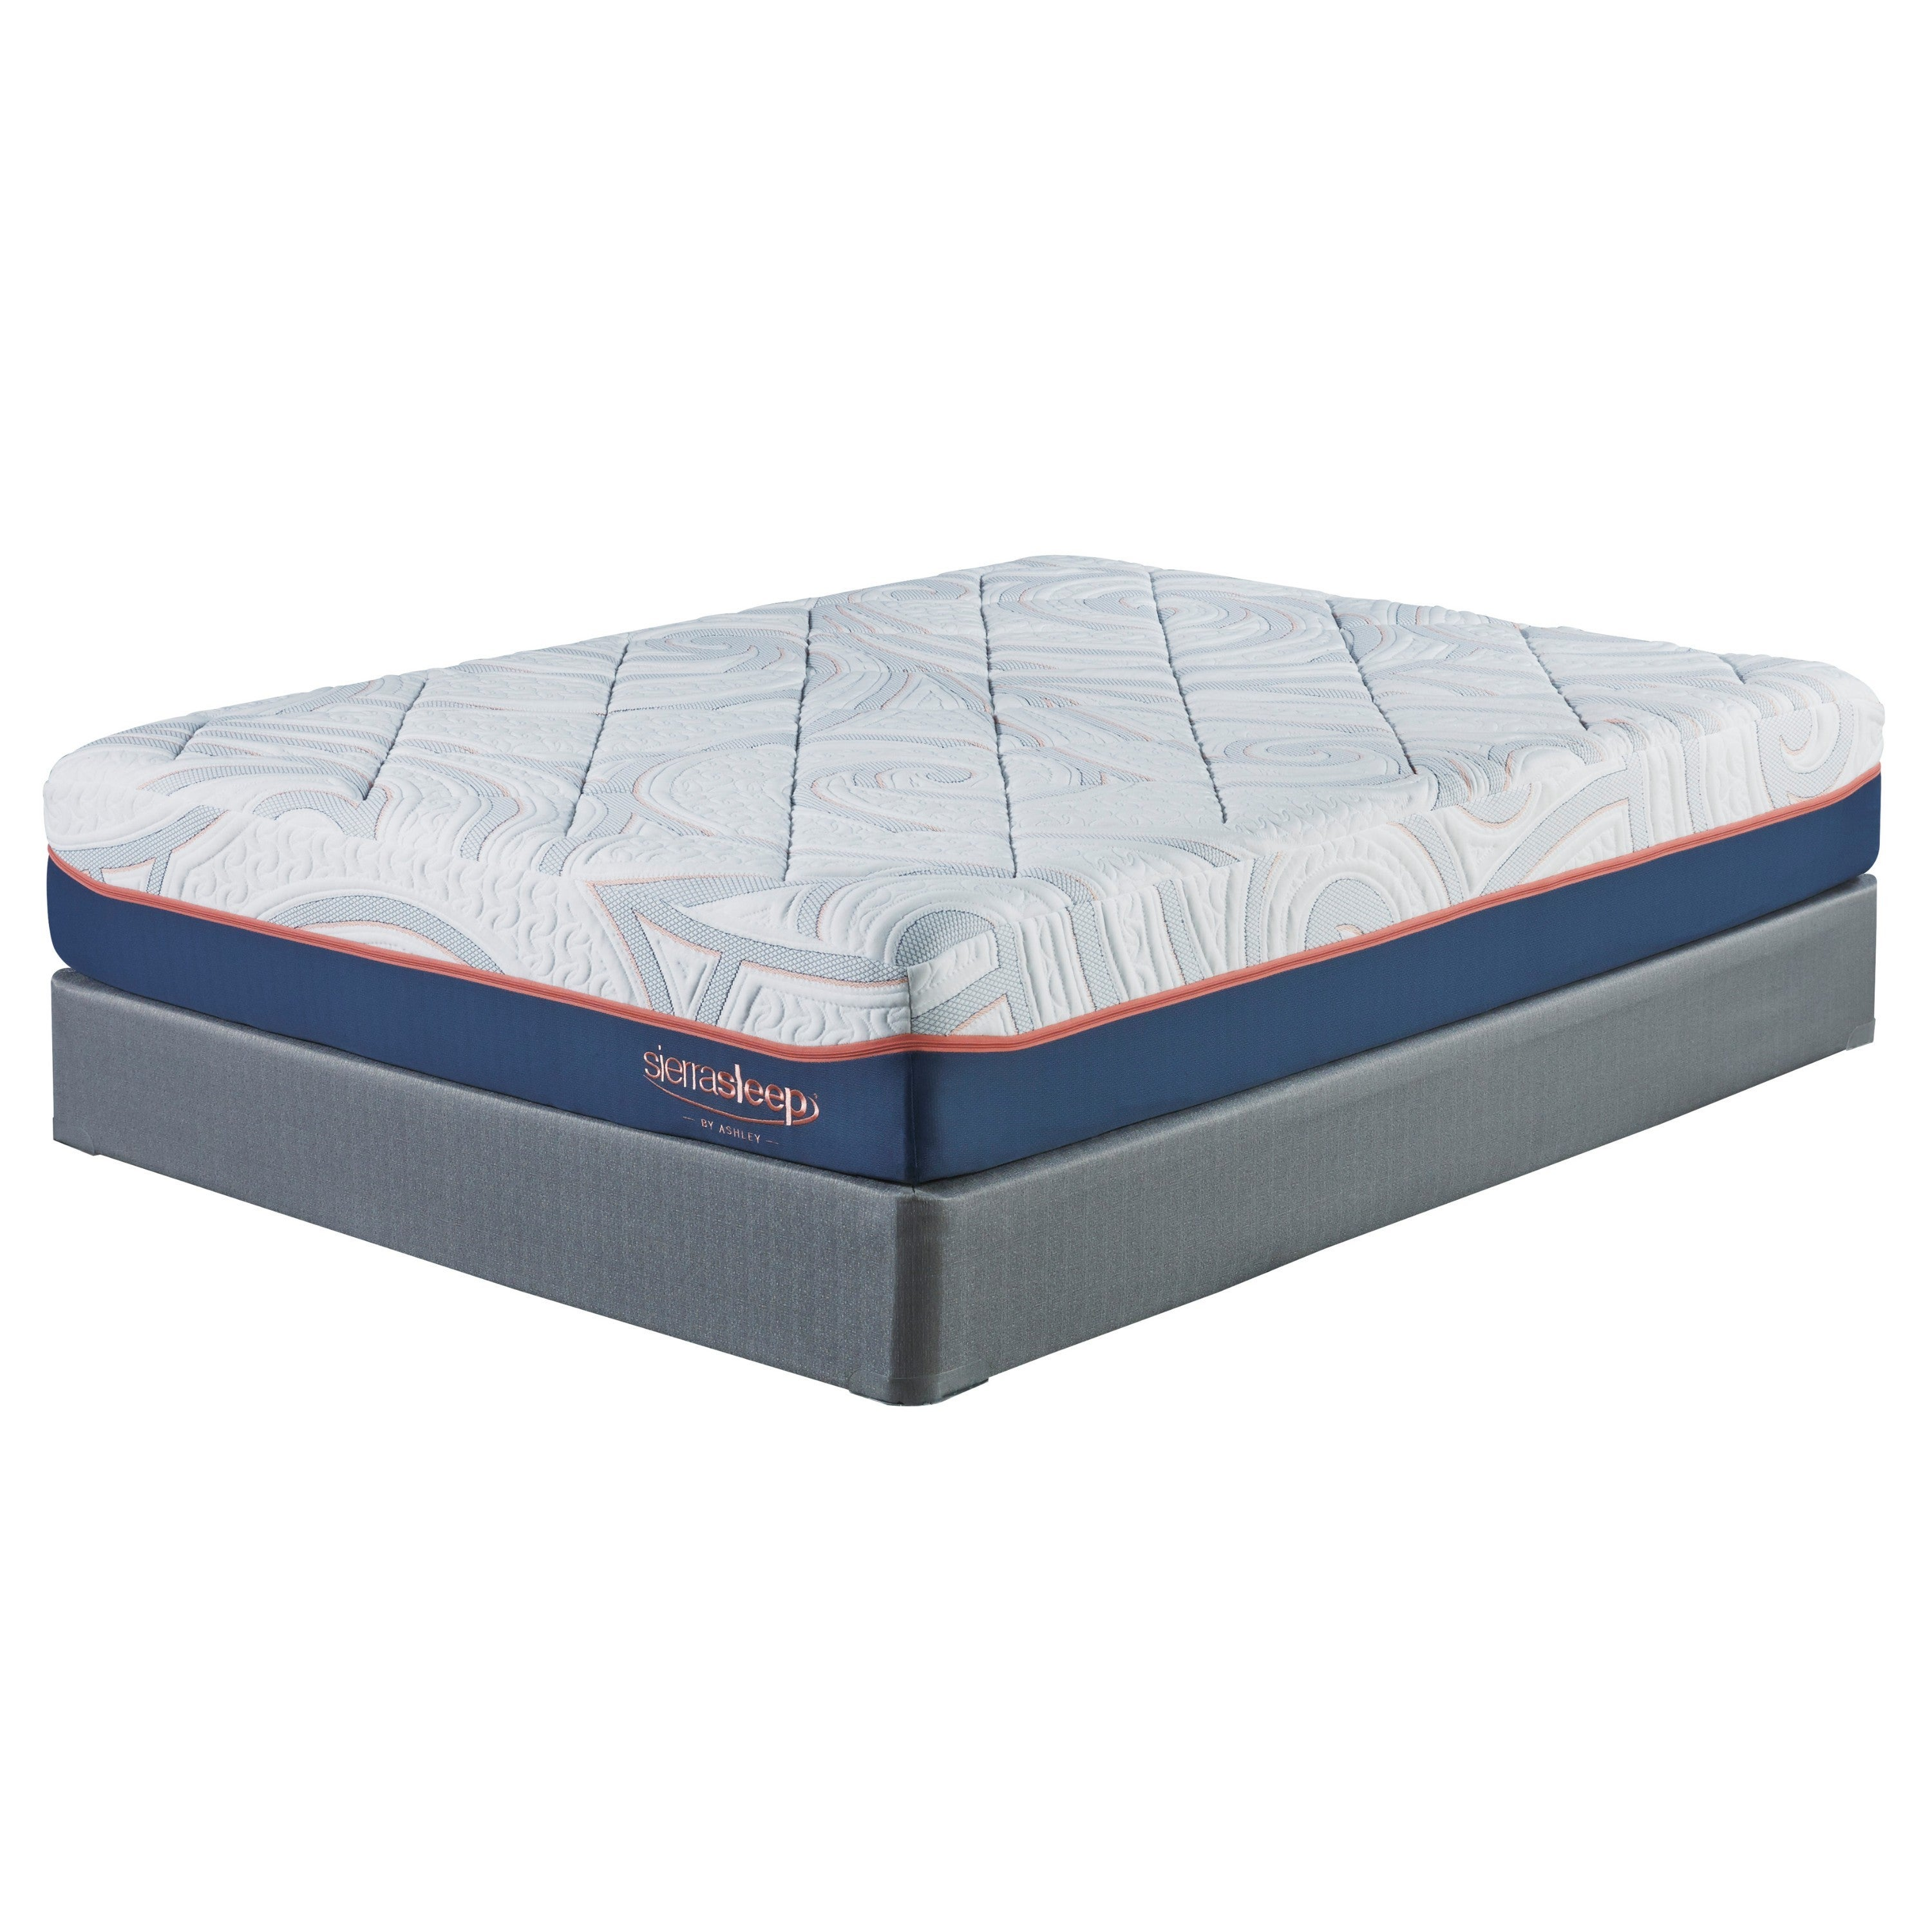 our mattress a sized img laying turning creek cabin queen mattresses bed slater king into